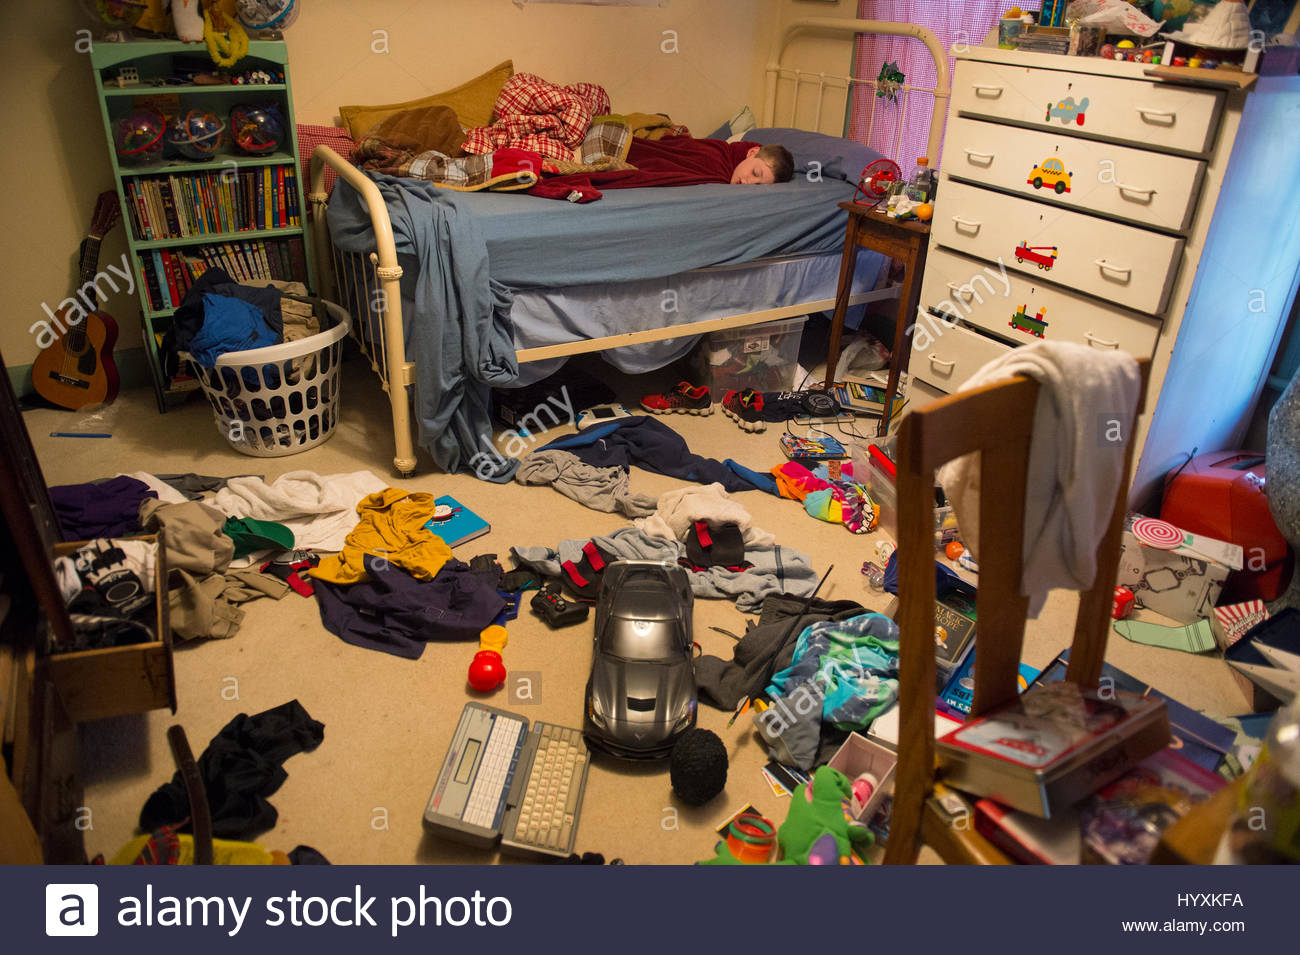 a young boy sleeps in his messy room stock photo royalty free image 137654366 alamy. Black Bedroom Furniture Sets. Home Design Ideas